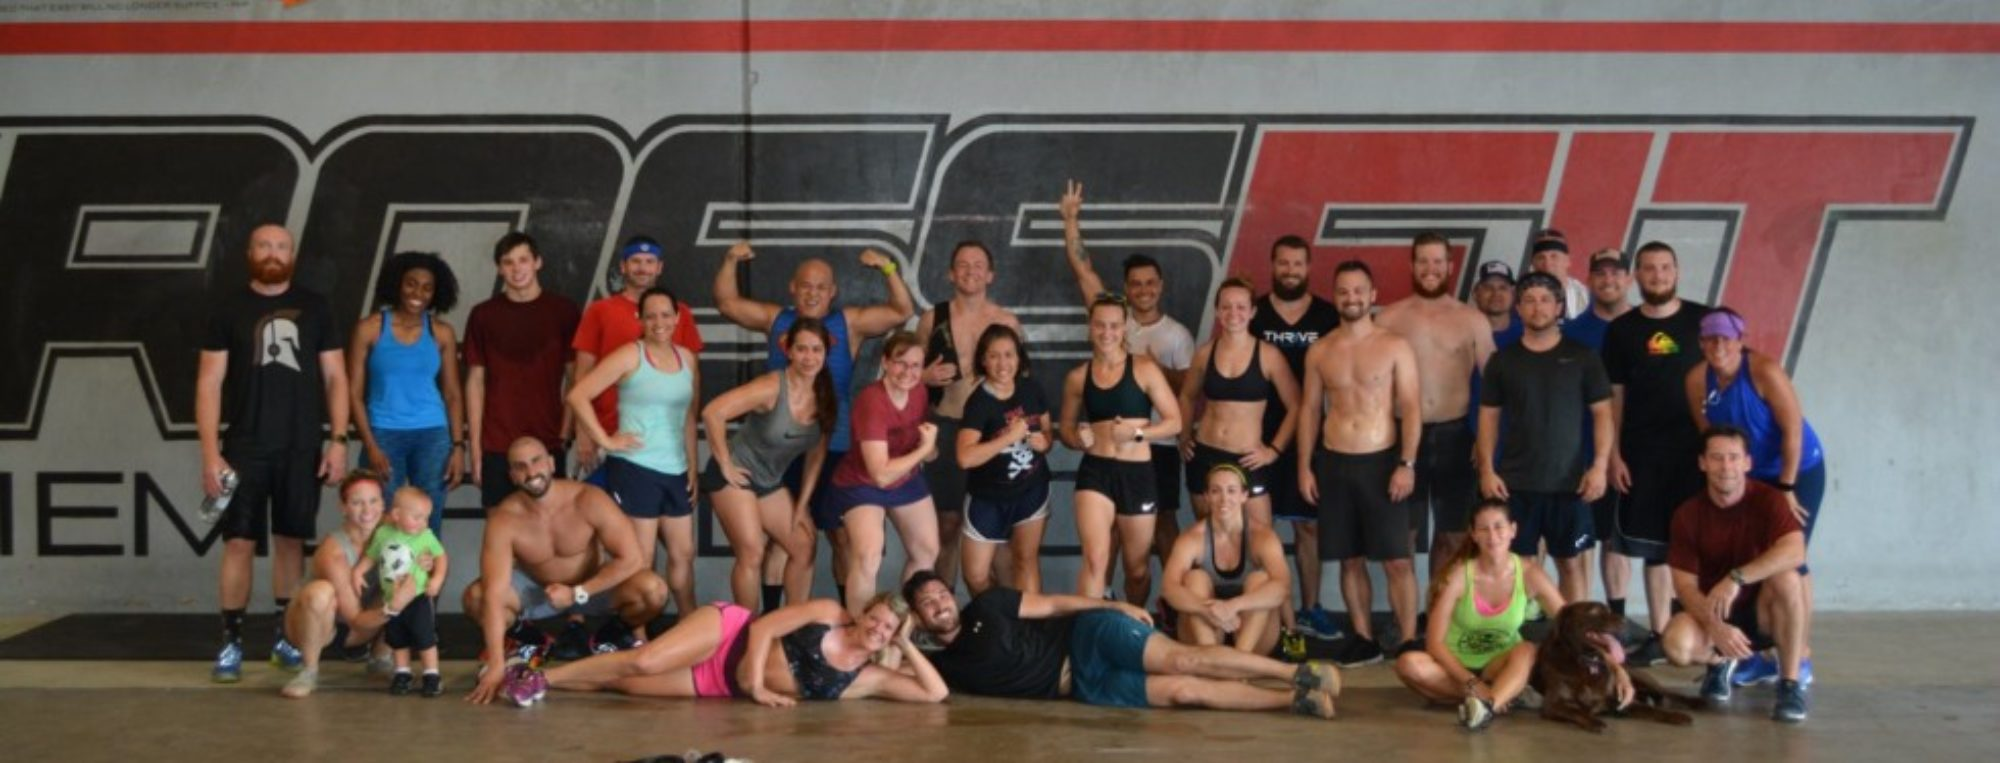 CrossFit Memorial Houston